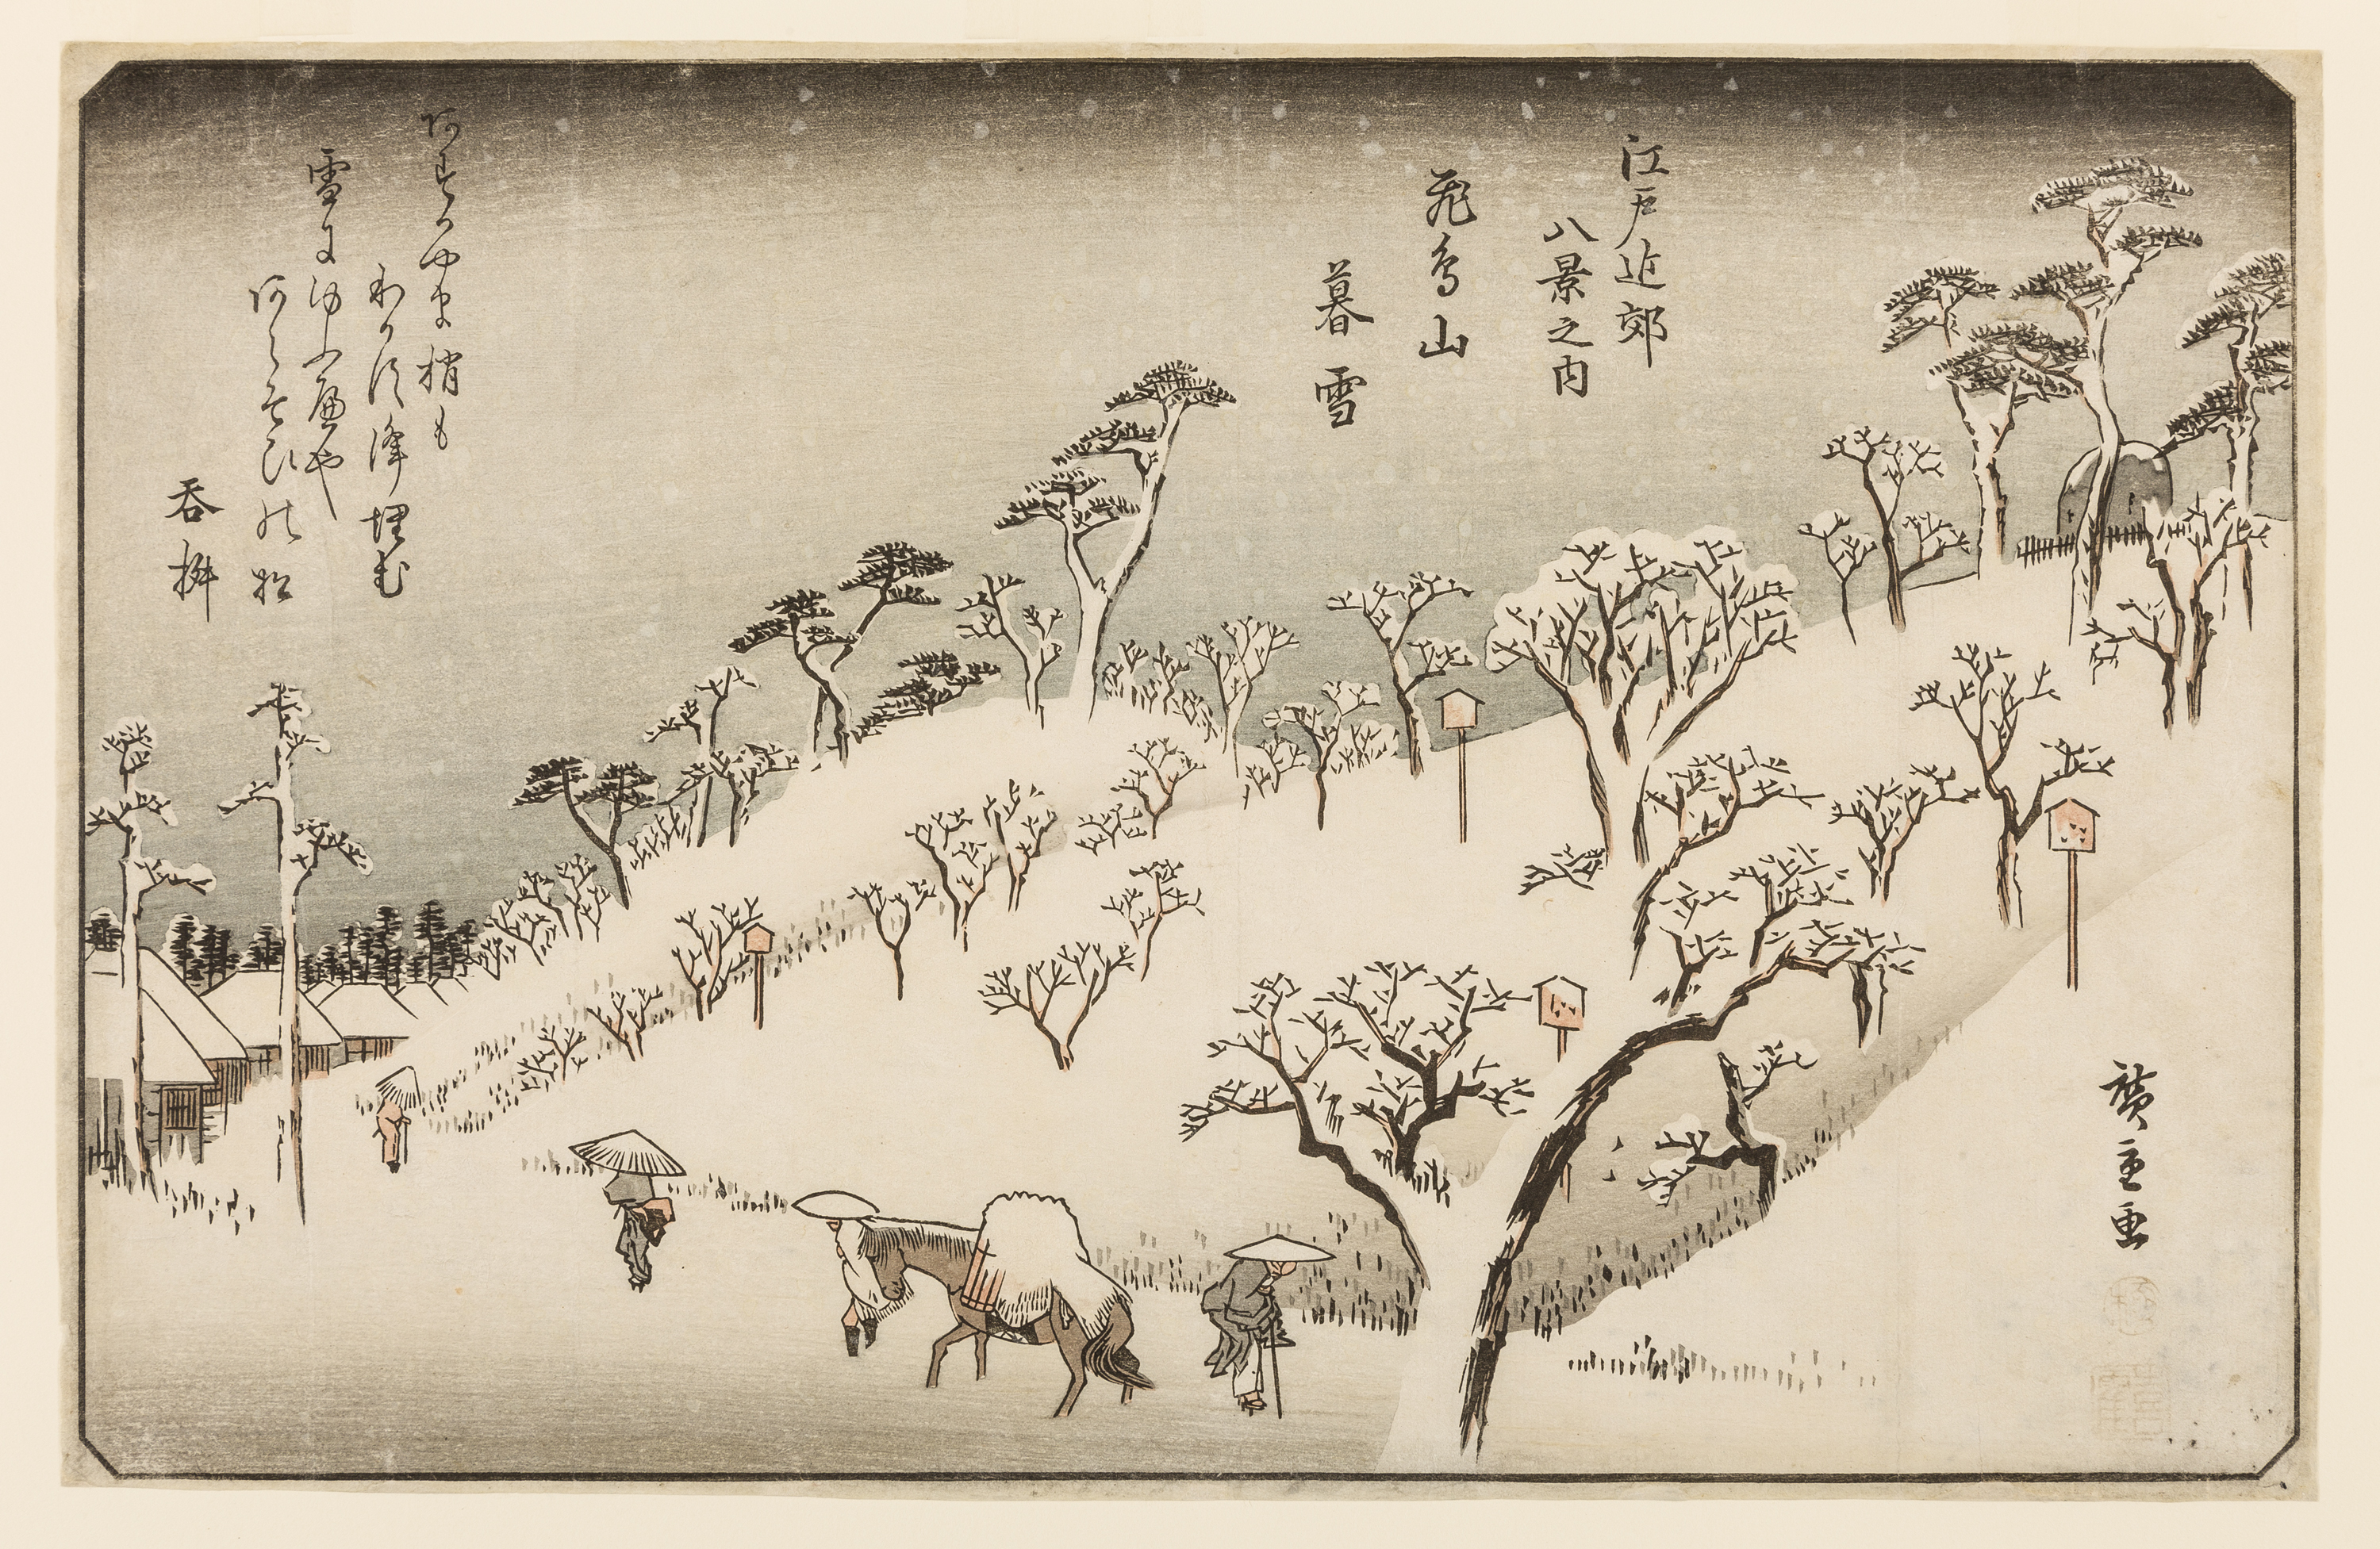 Image of a Japanese woodblock print with a valley of snowy trees against a grey sky, with Japanese script towards the right edge.